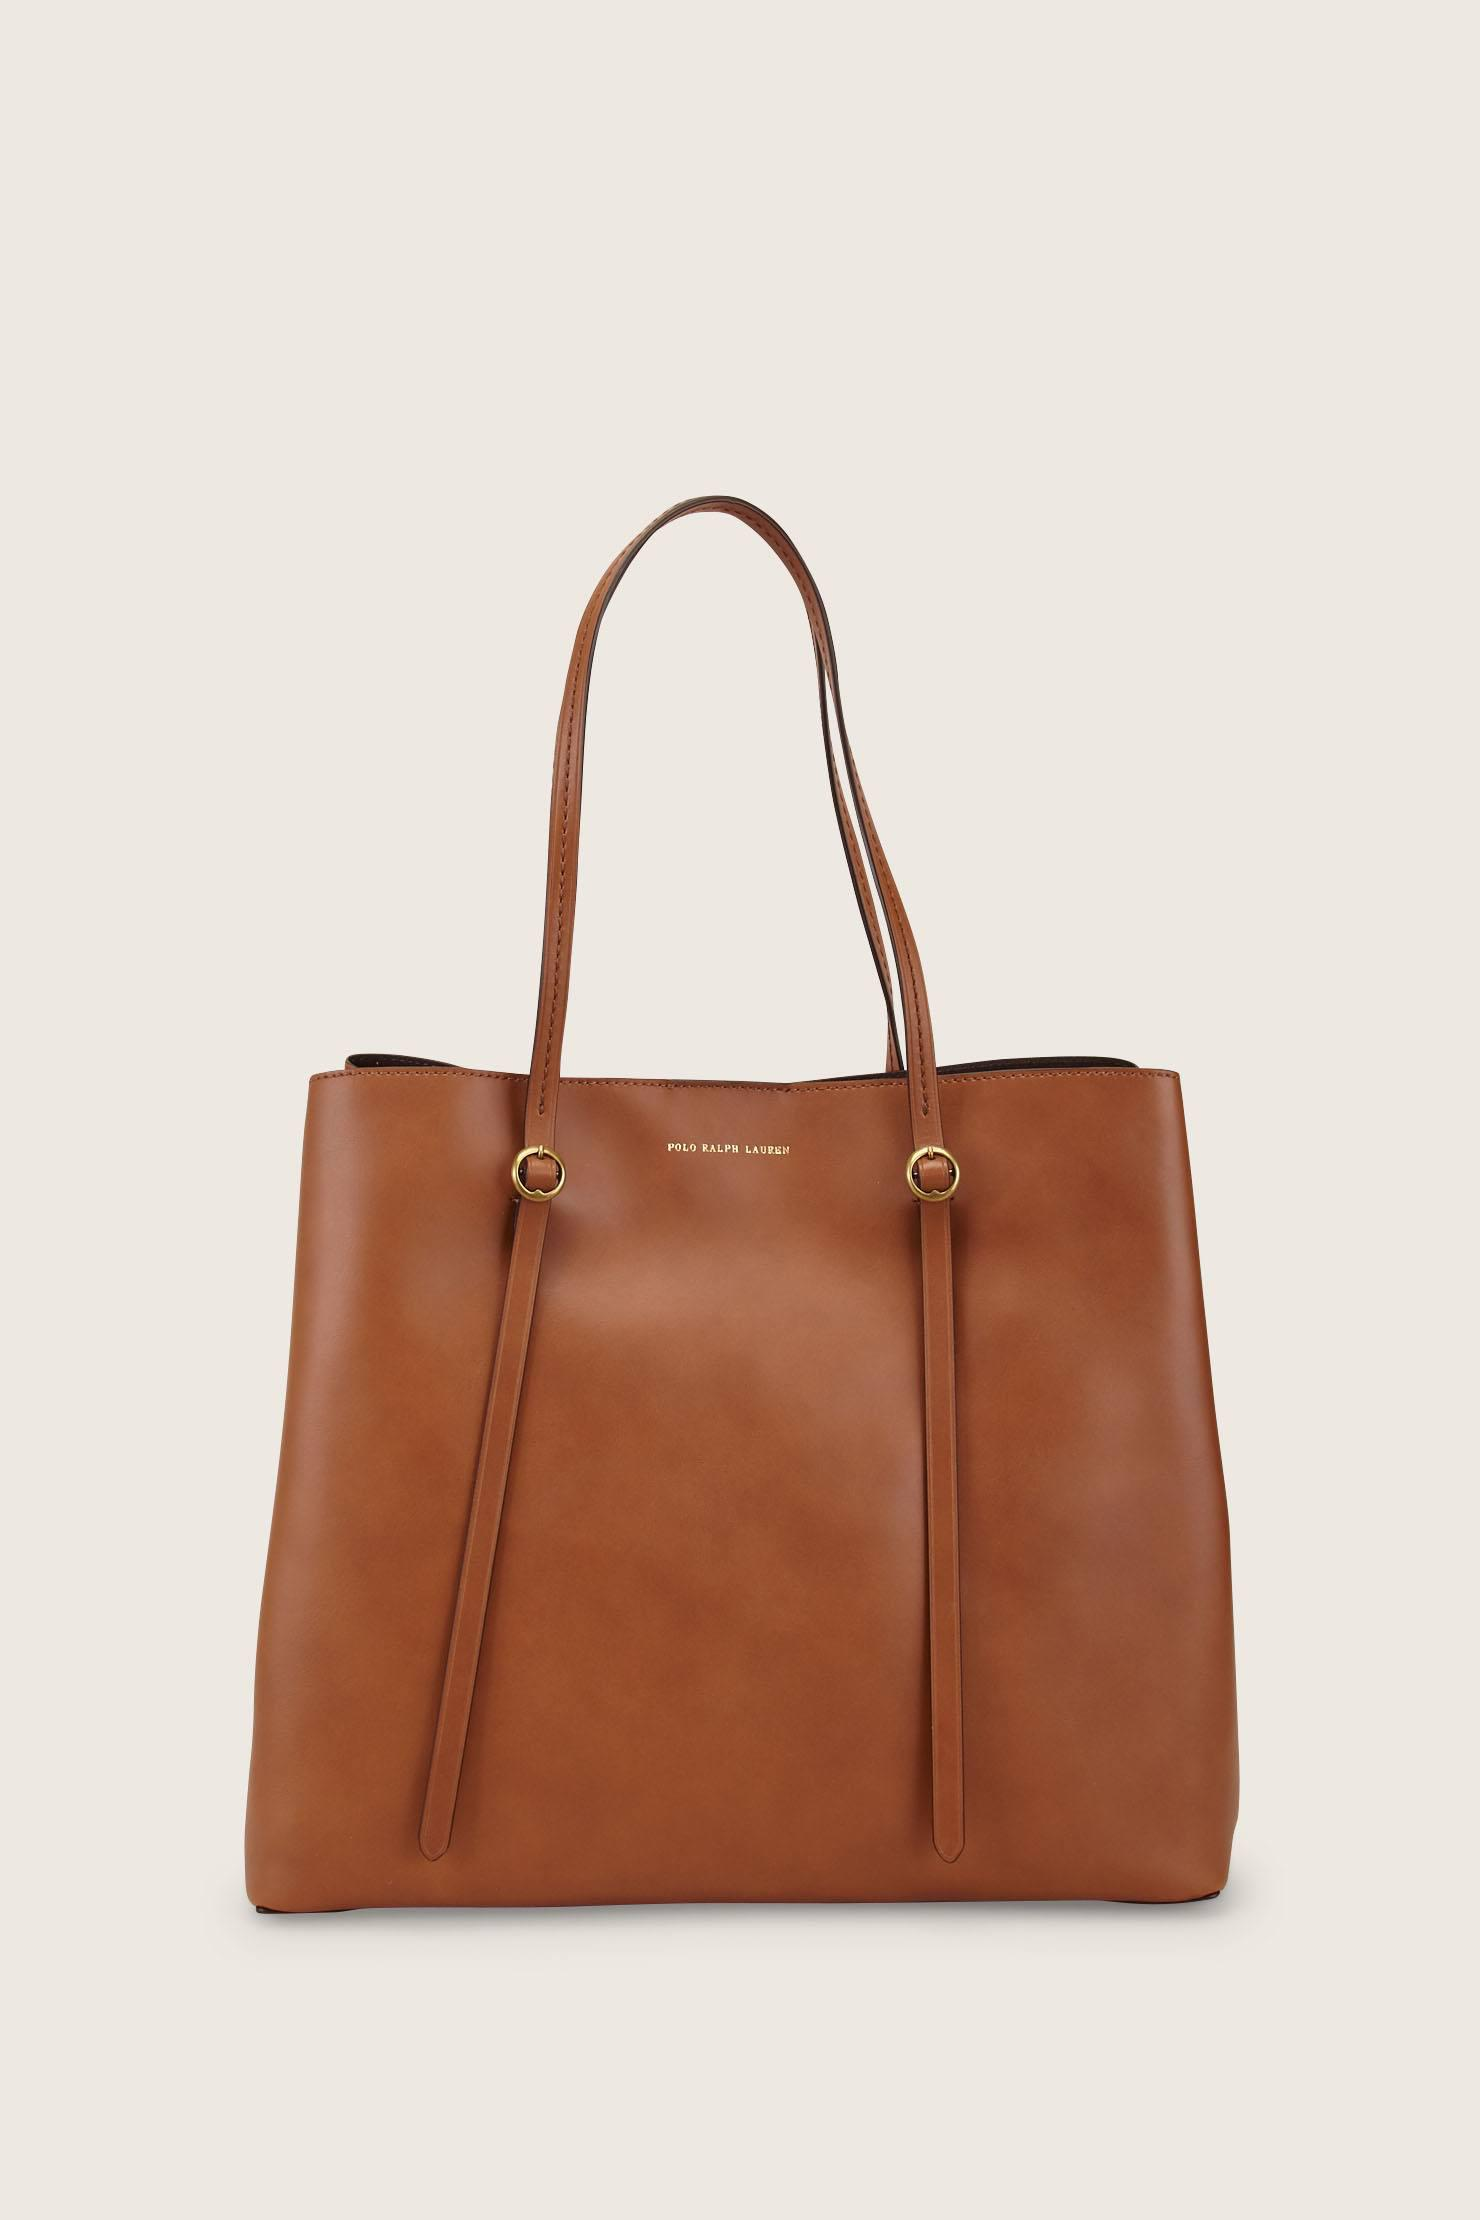 520c889ad65 Polo Ralph Lauren Tote Bags in Brown - Lyst